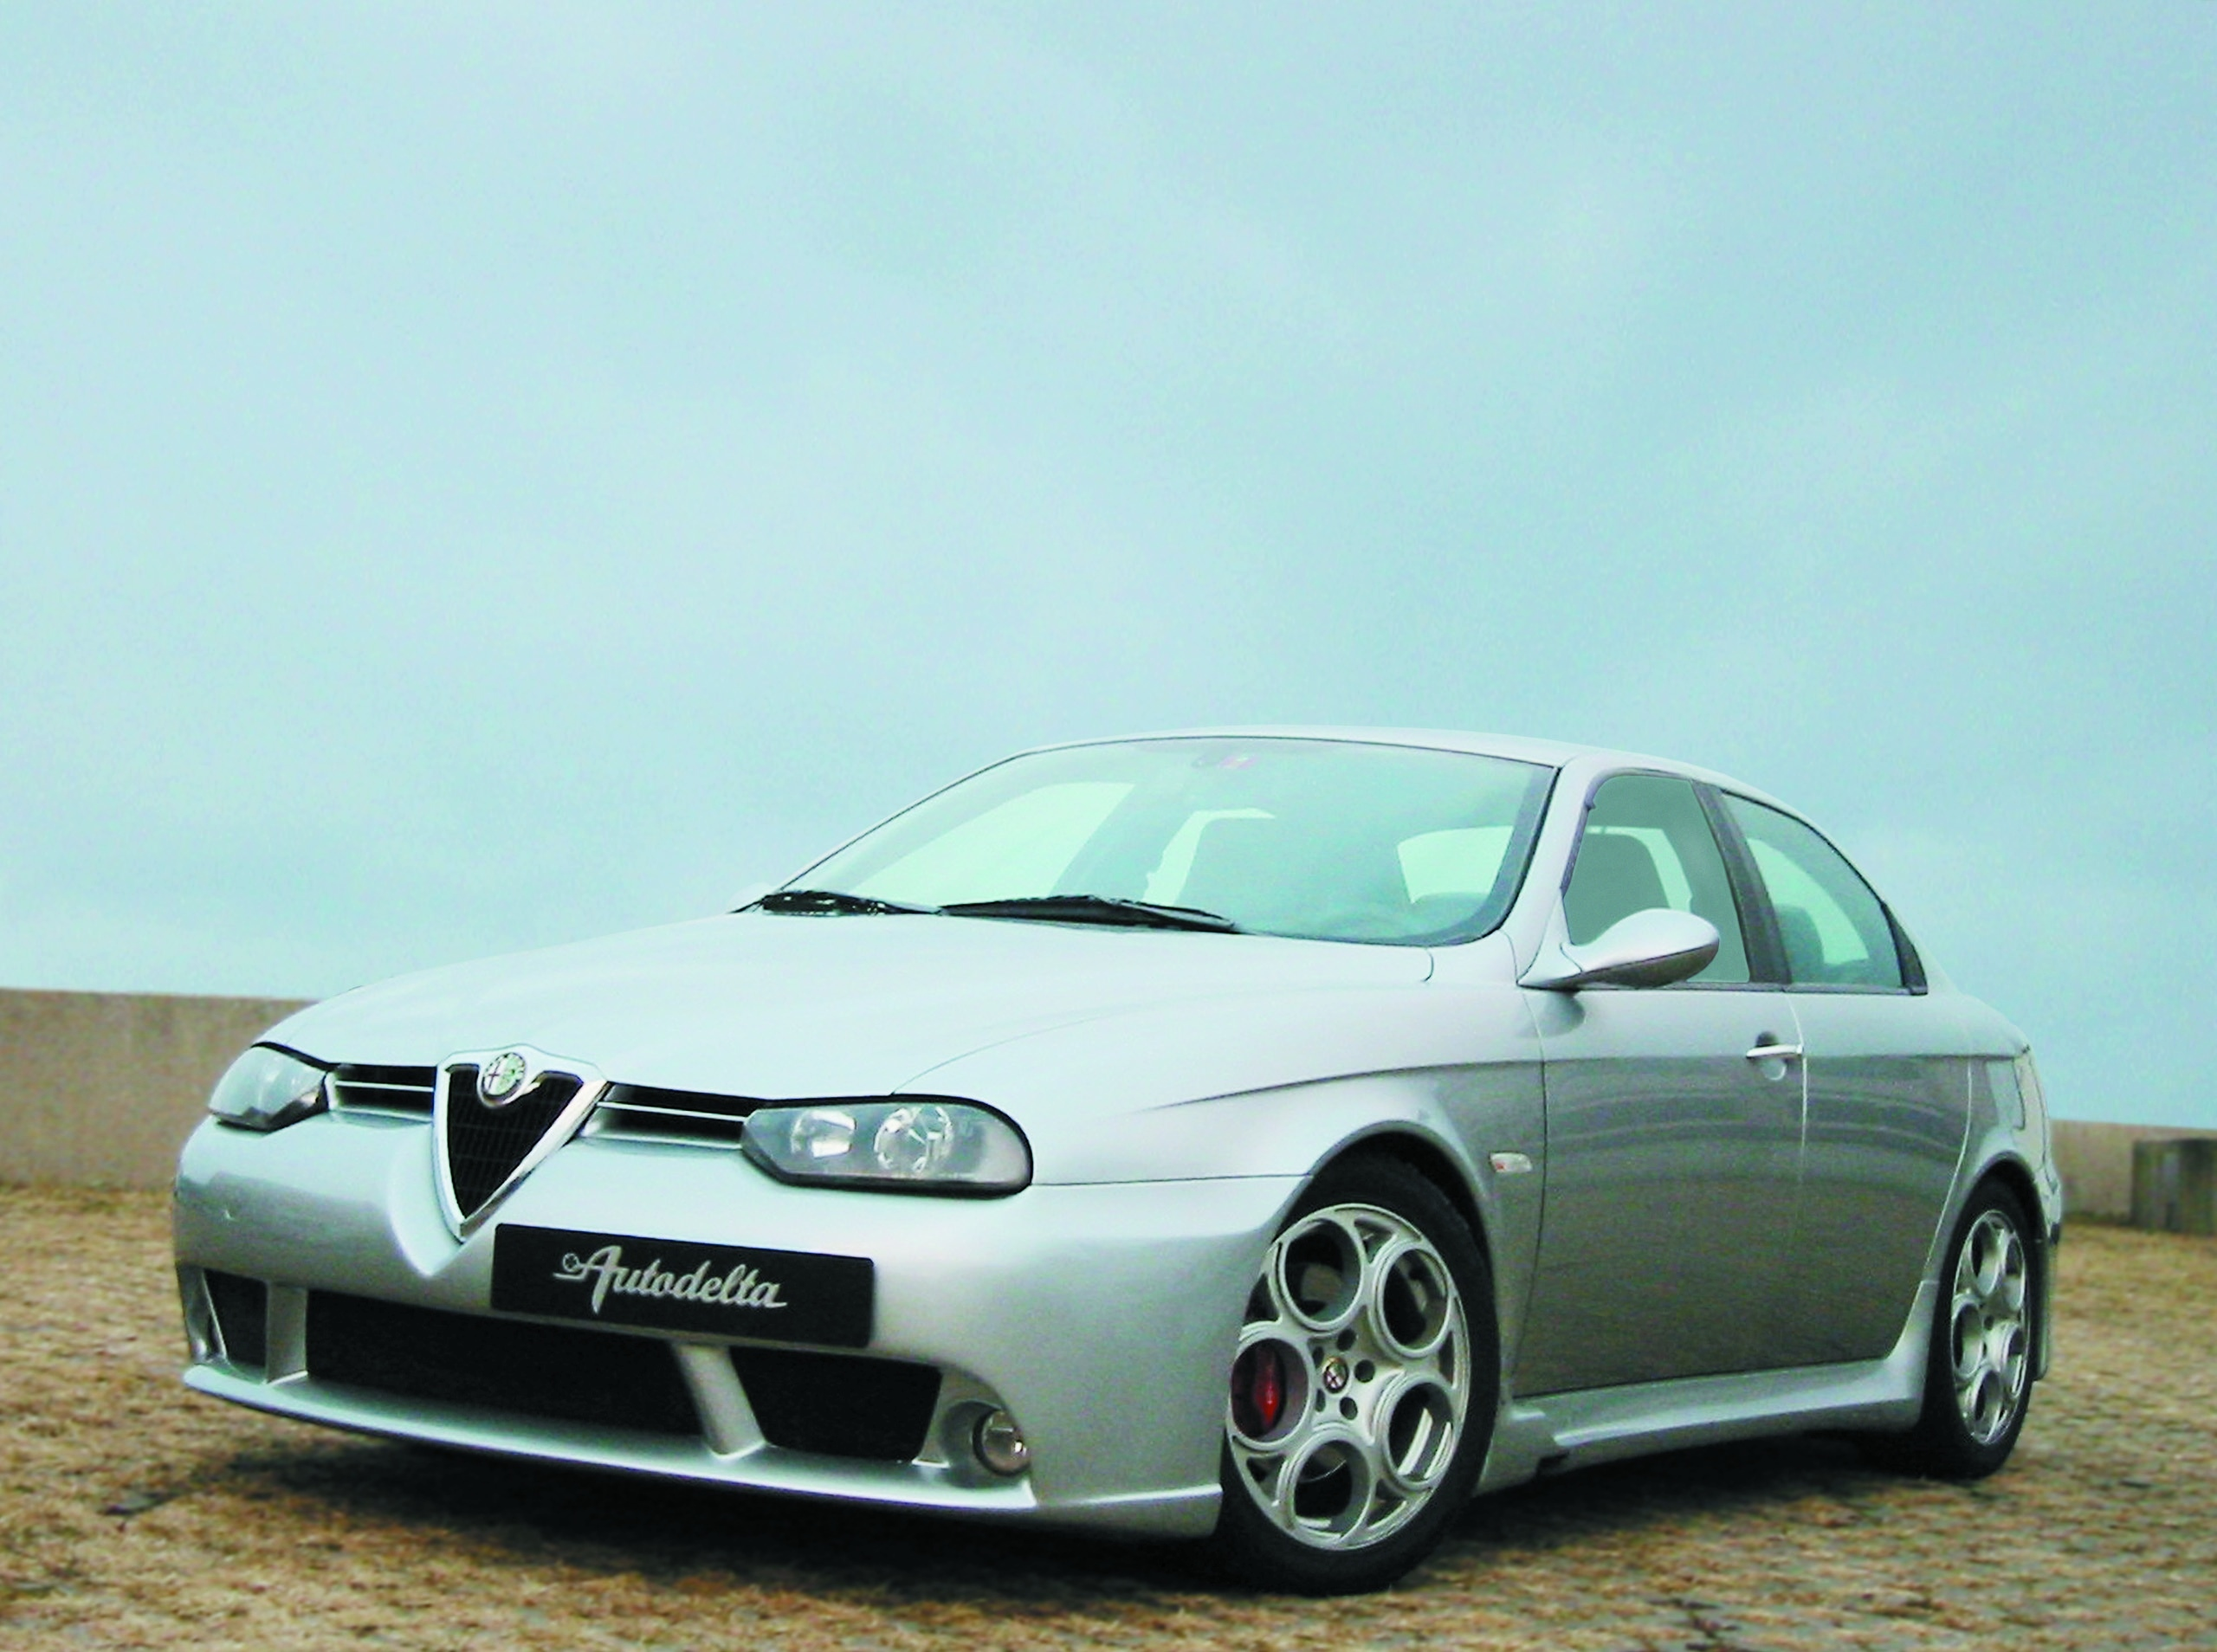 Images Of Hd Love Wallpapers Autodelta Alfa Romeo 156 Gta Picture 13180